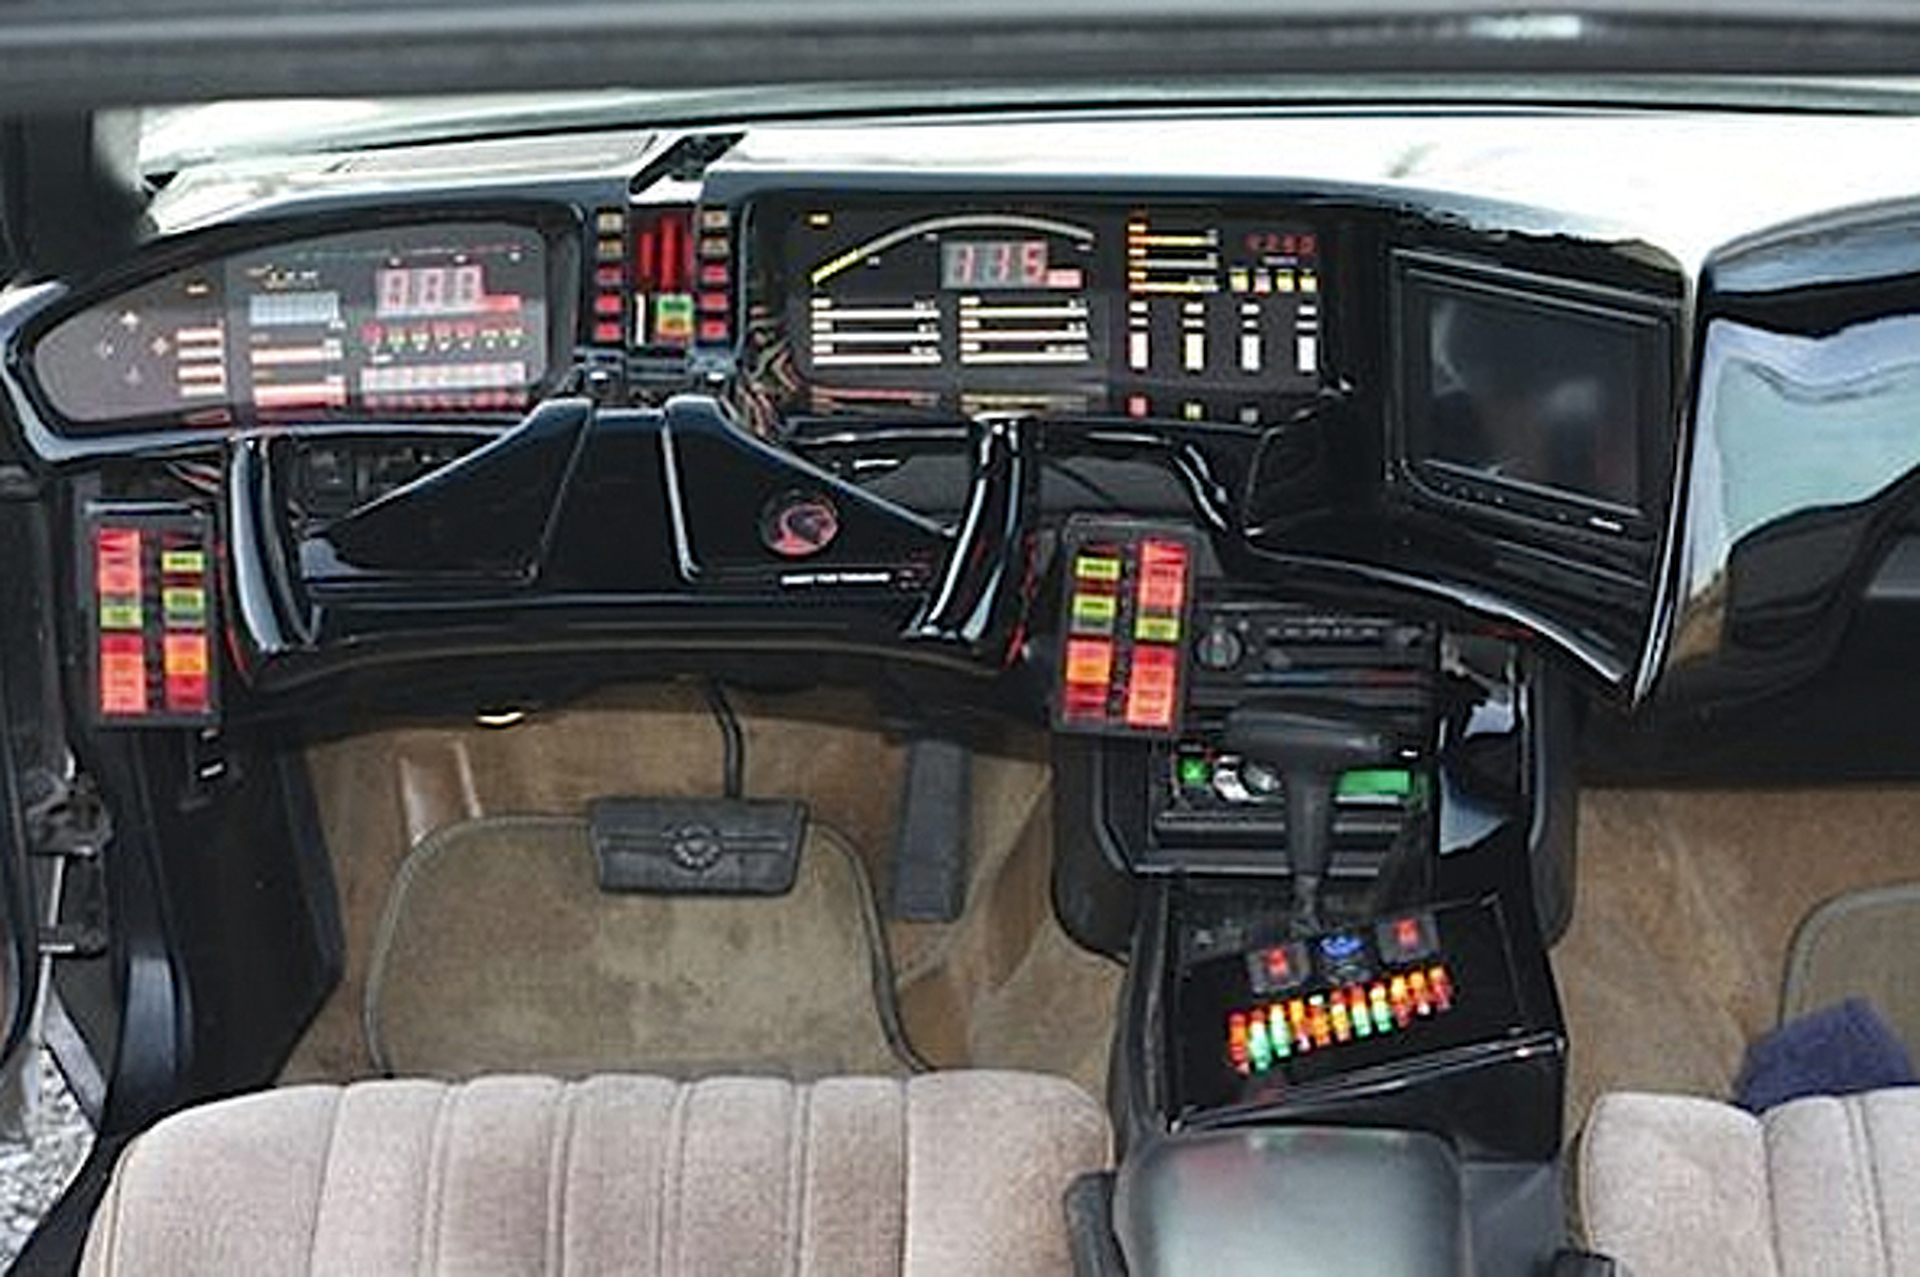 eBay Car of the Week: 1986 Pontiac Firebird Knight Rider Replica